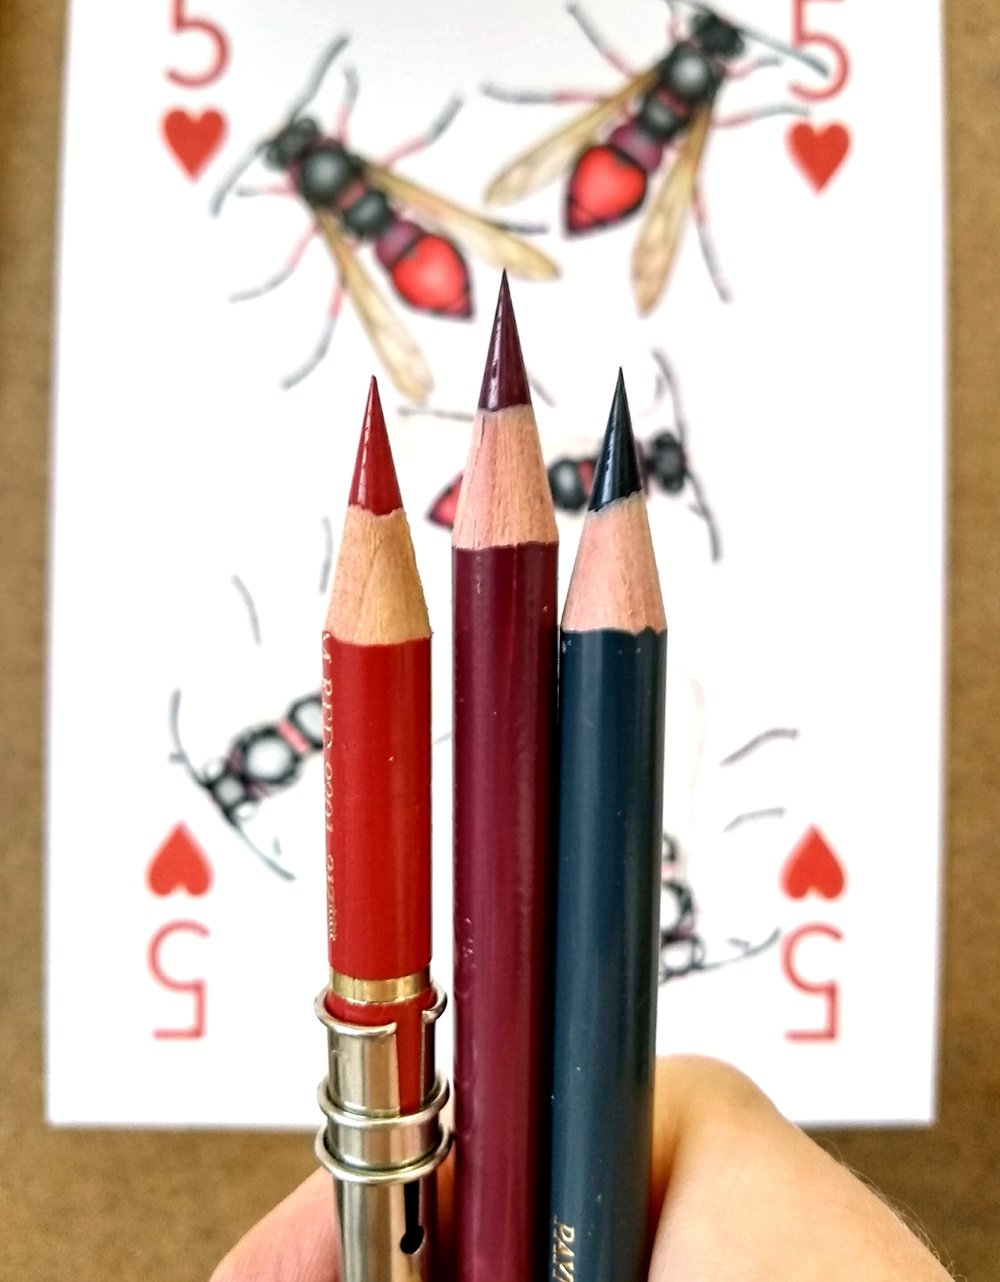 Three very sharp pencils being held up in front of a drawing board.